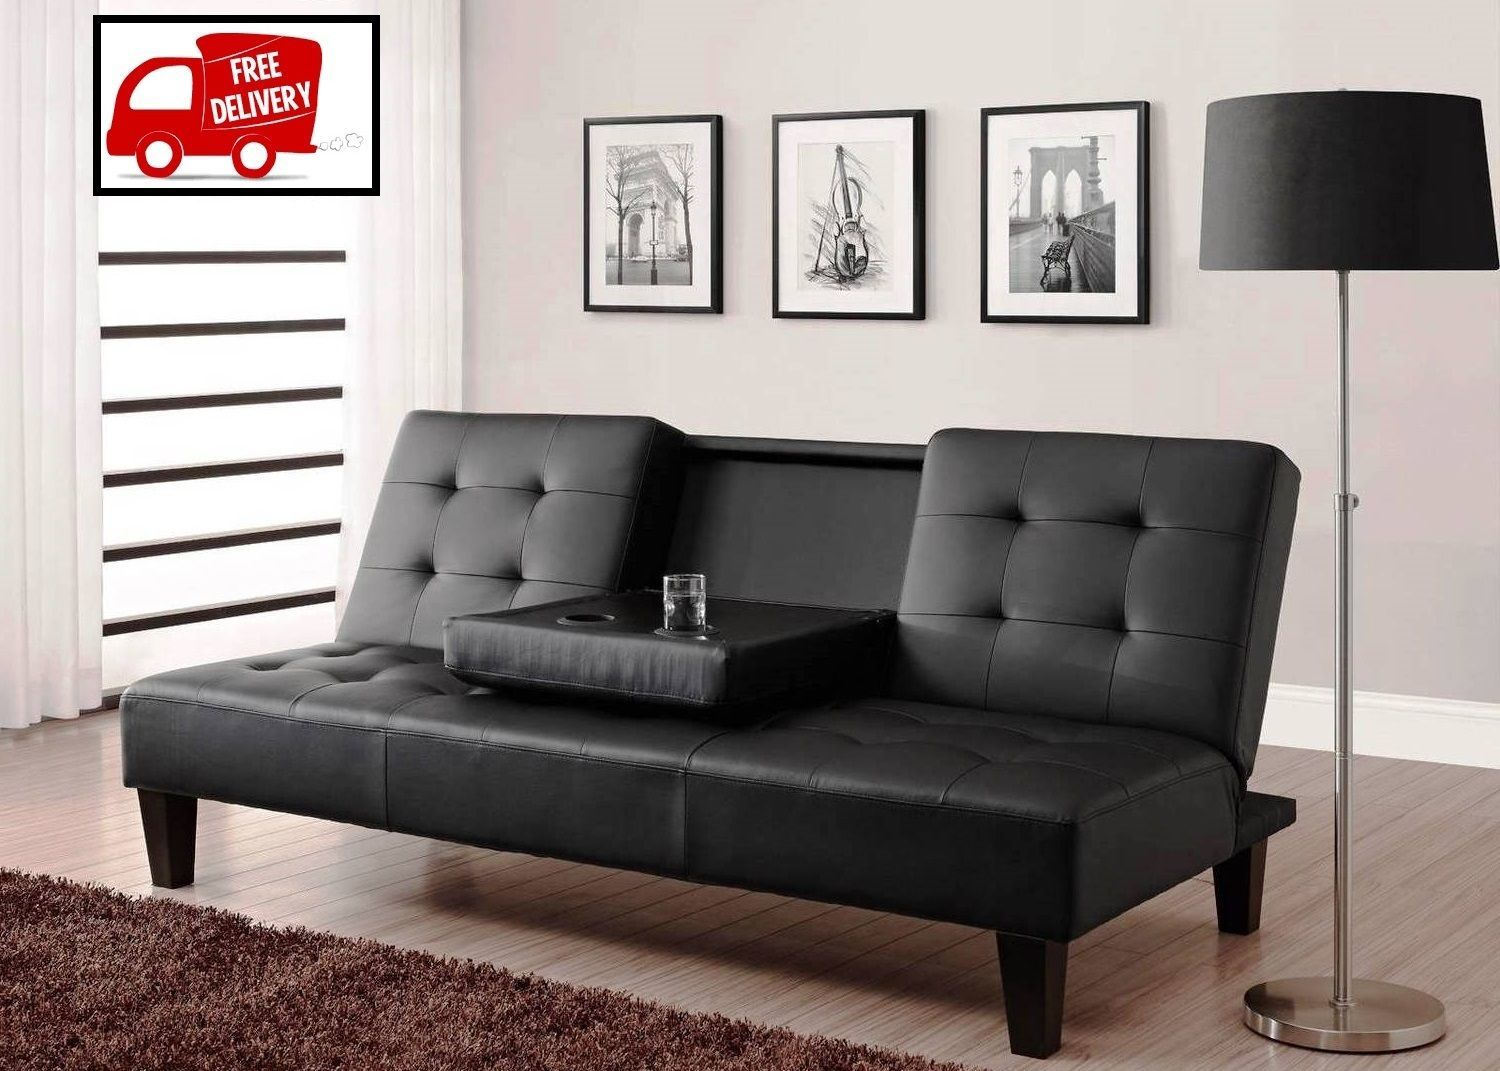 Leather futon sofa bed couch black upholstery convertible for Sofa bed heaven